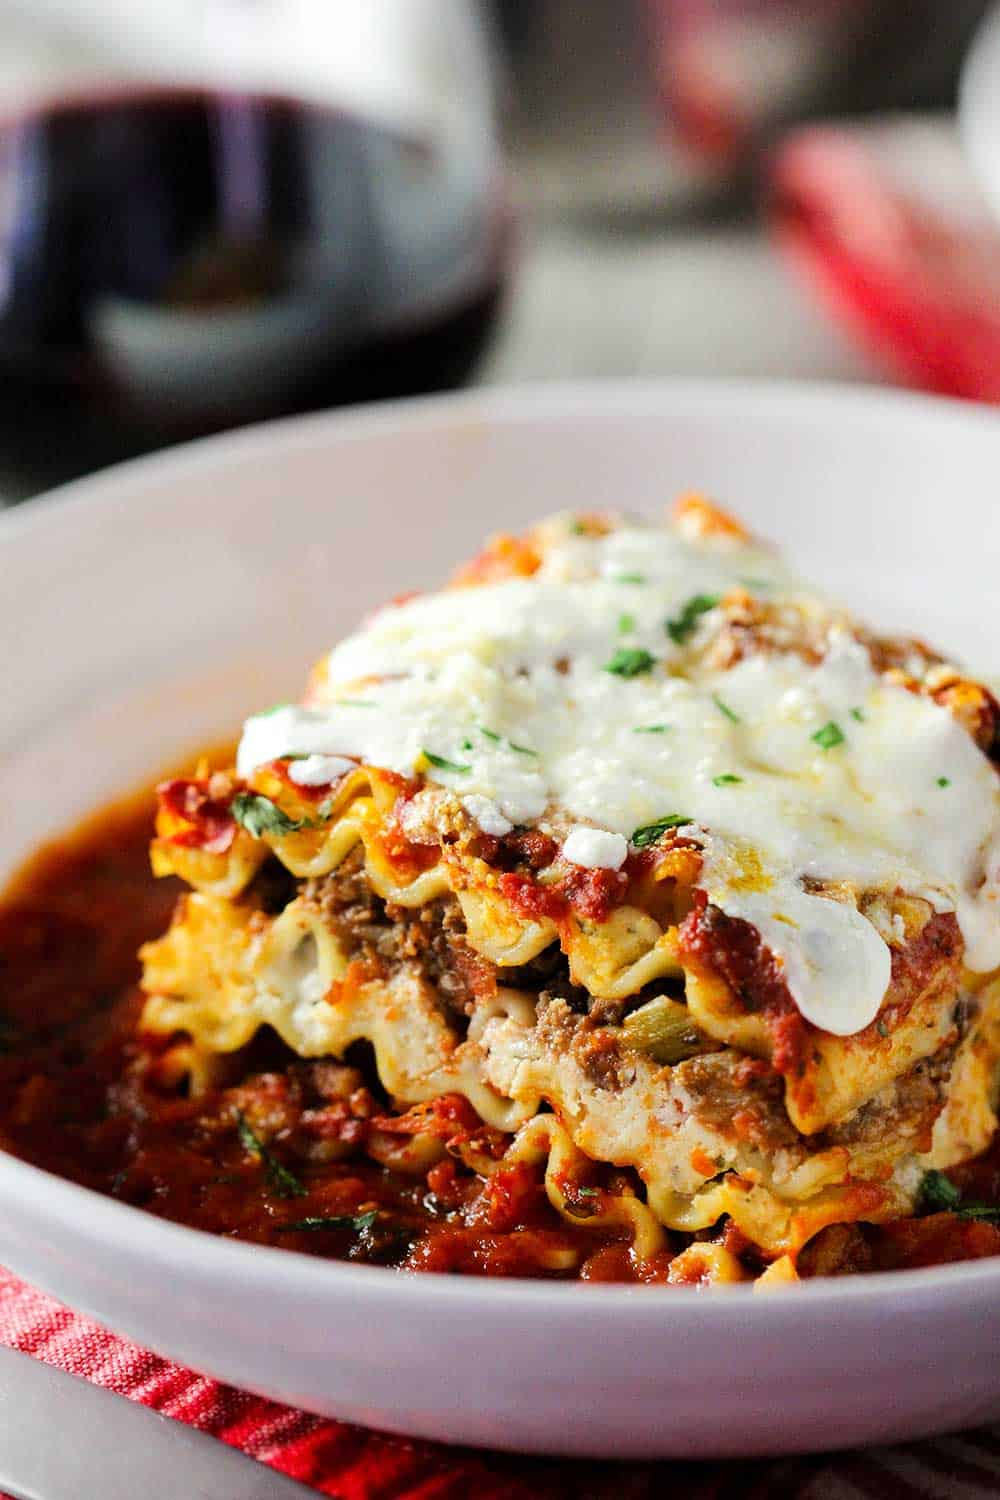 A white bowl of classic meat lasagna next to a glass of red wine.